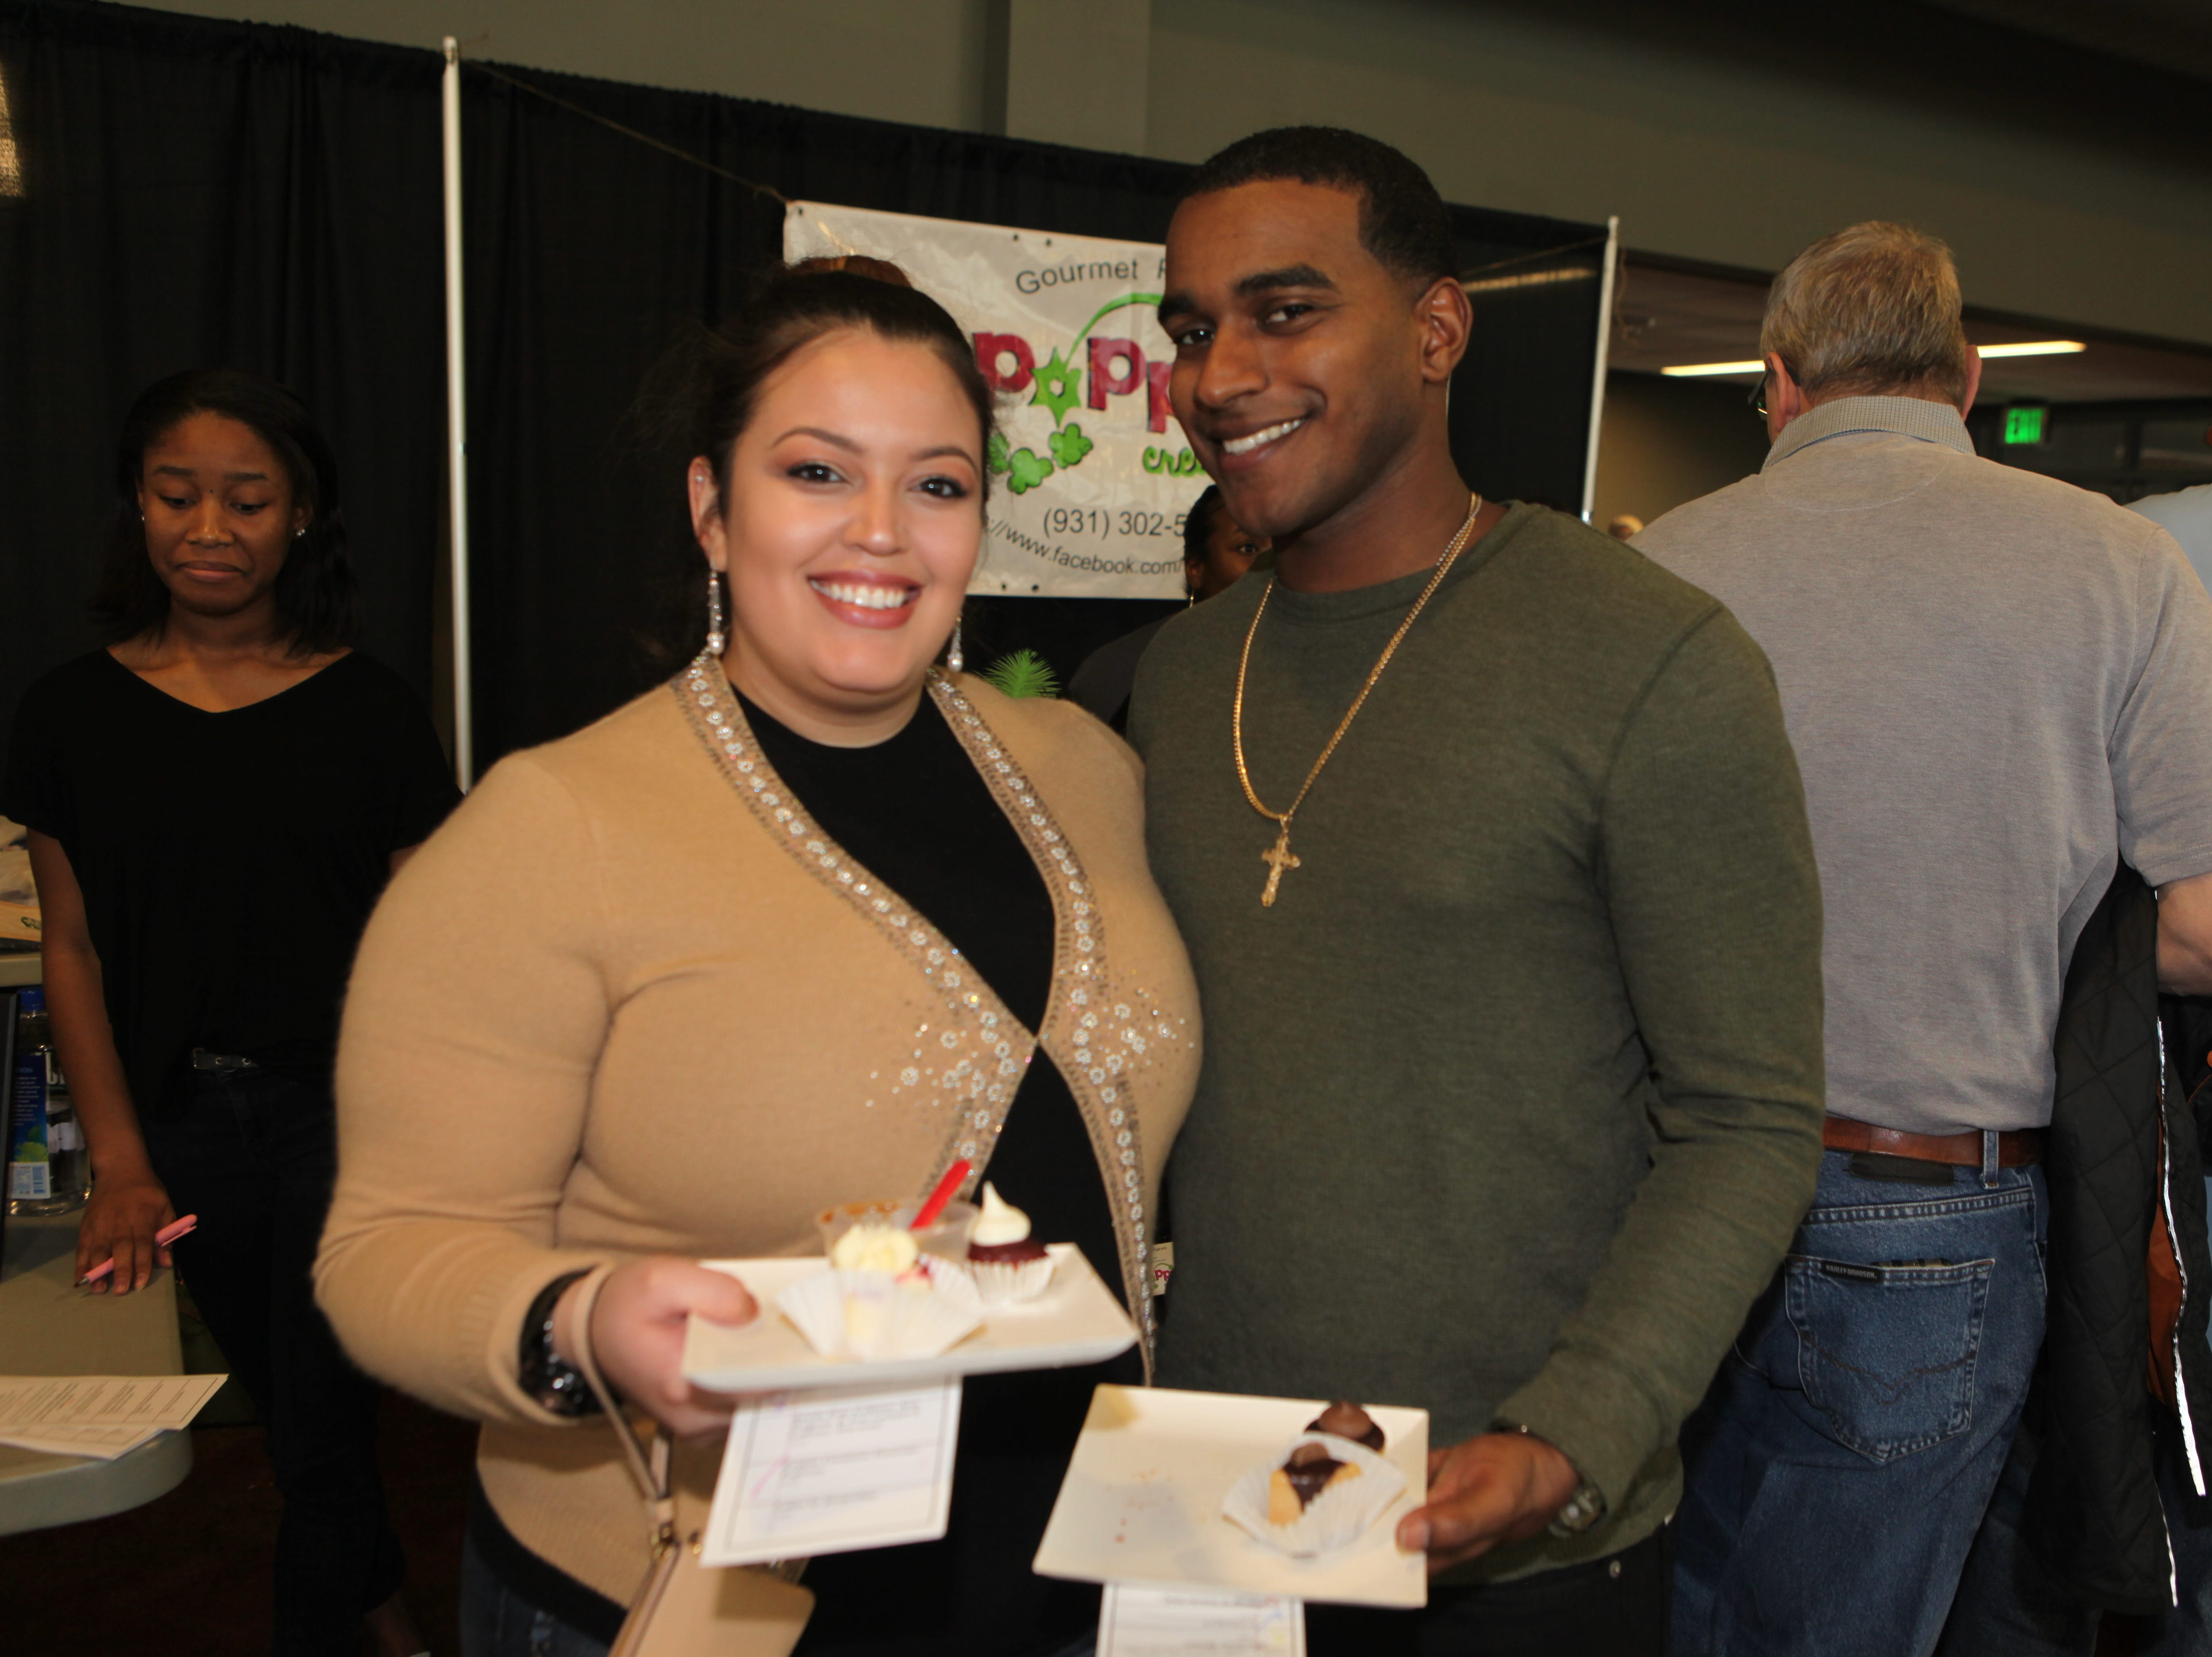 Natalie Roman and Terrance Royer smile during the 7th Annual Chocolate Affair at Wilma Rudolph Event Center Saturday, February 2, 2019 . The sold-out event saw hundreds of guests enjoying chocolate creations from more than a dozen local and national vendors.